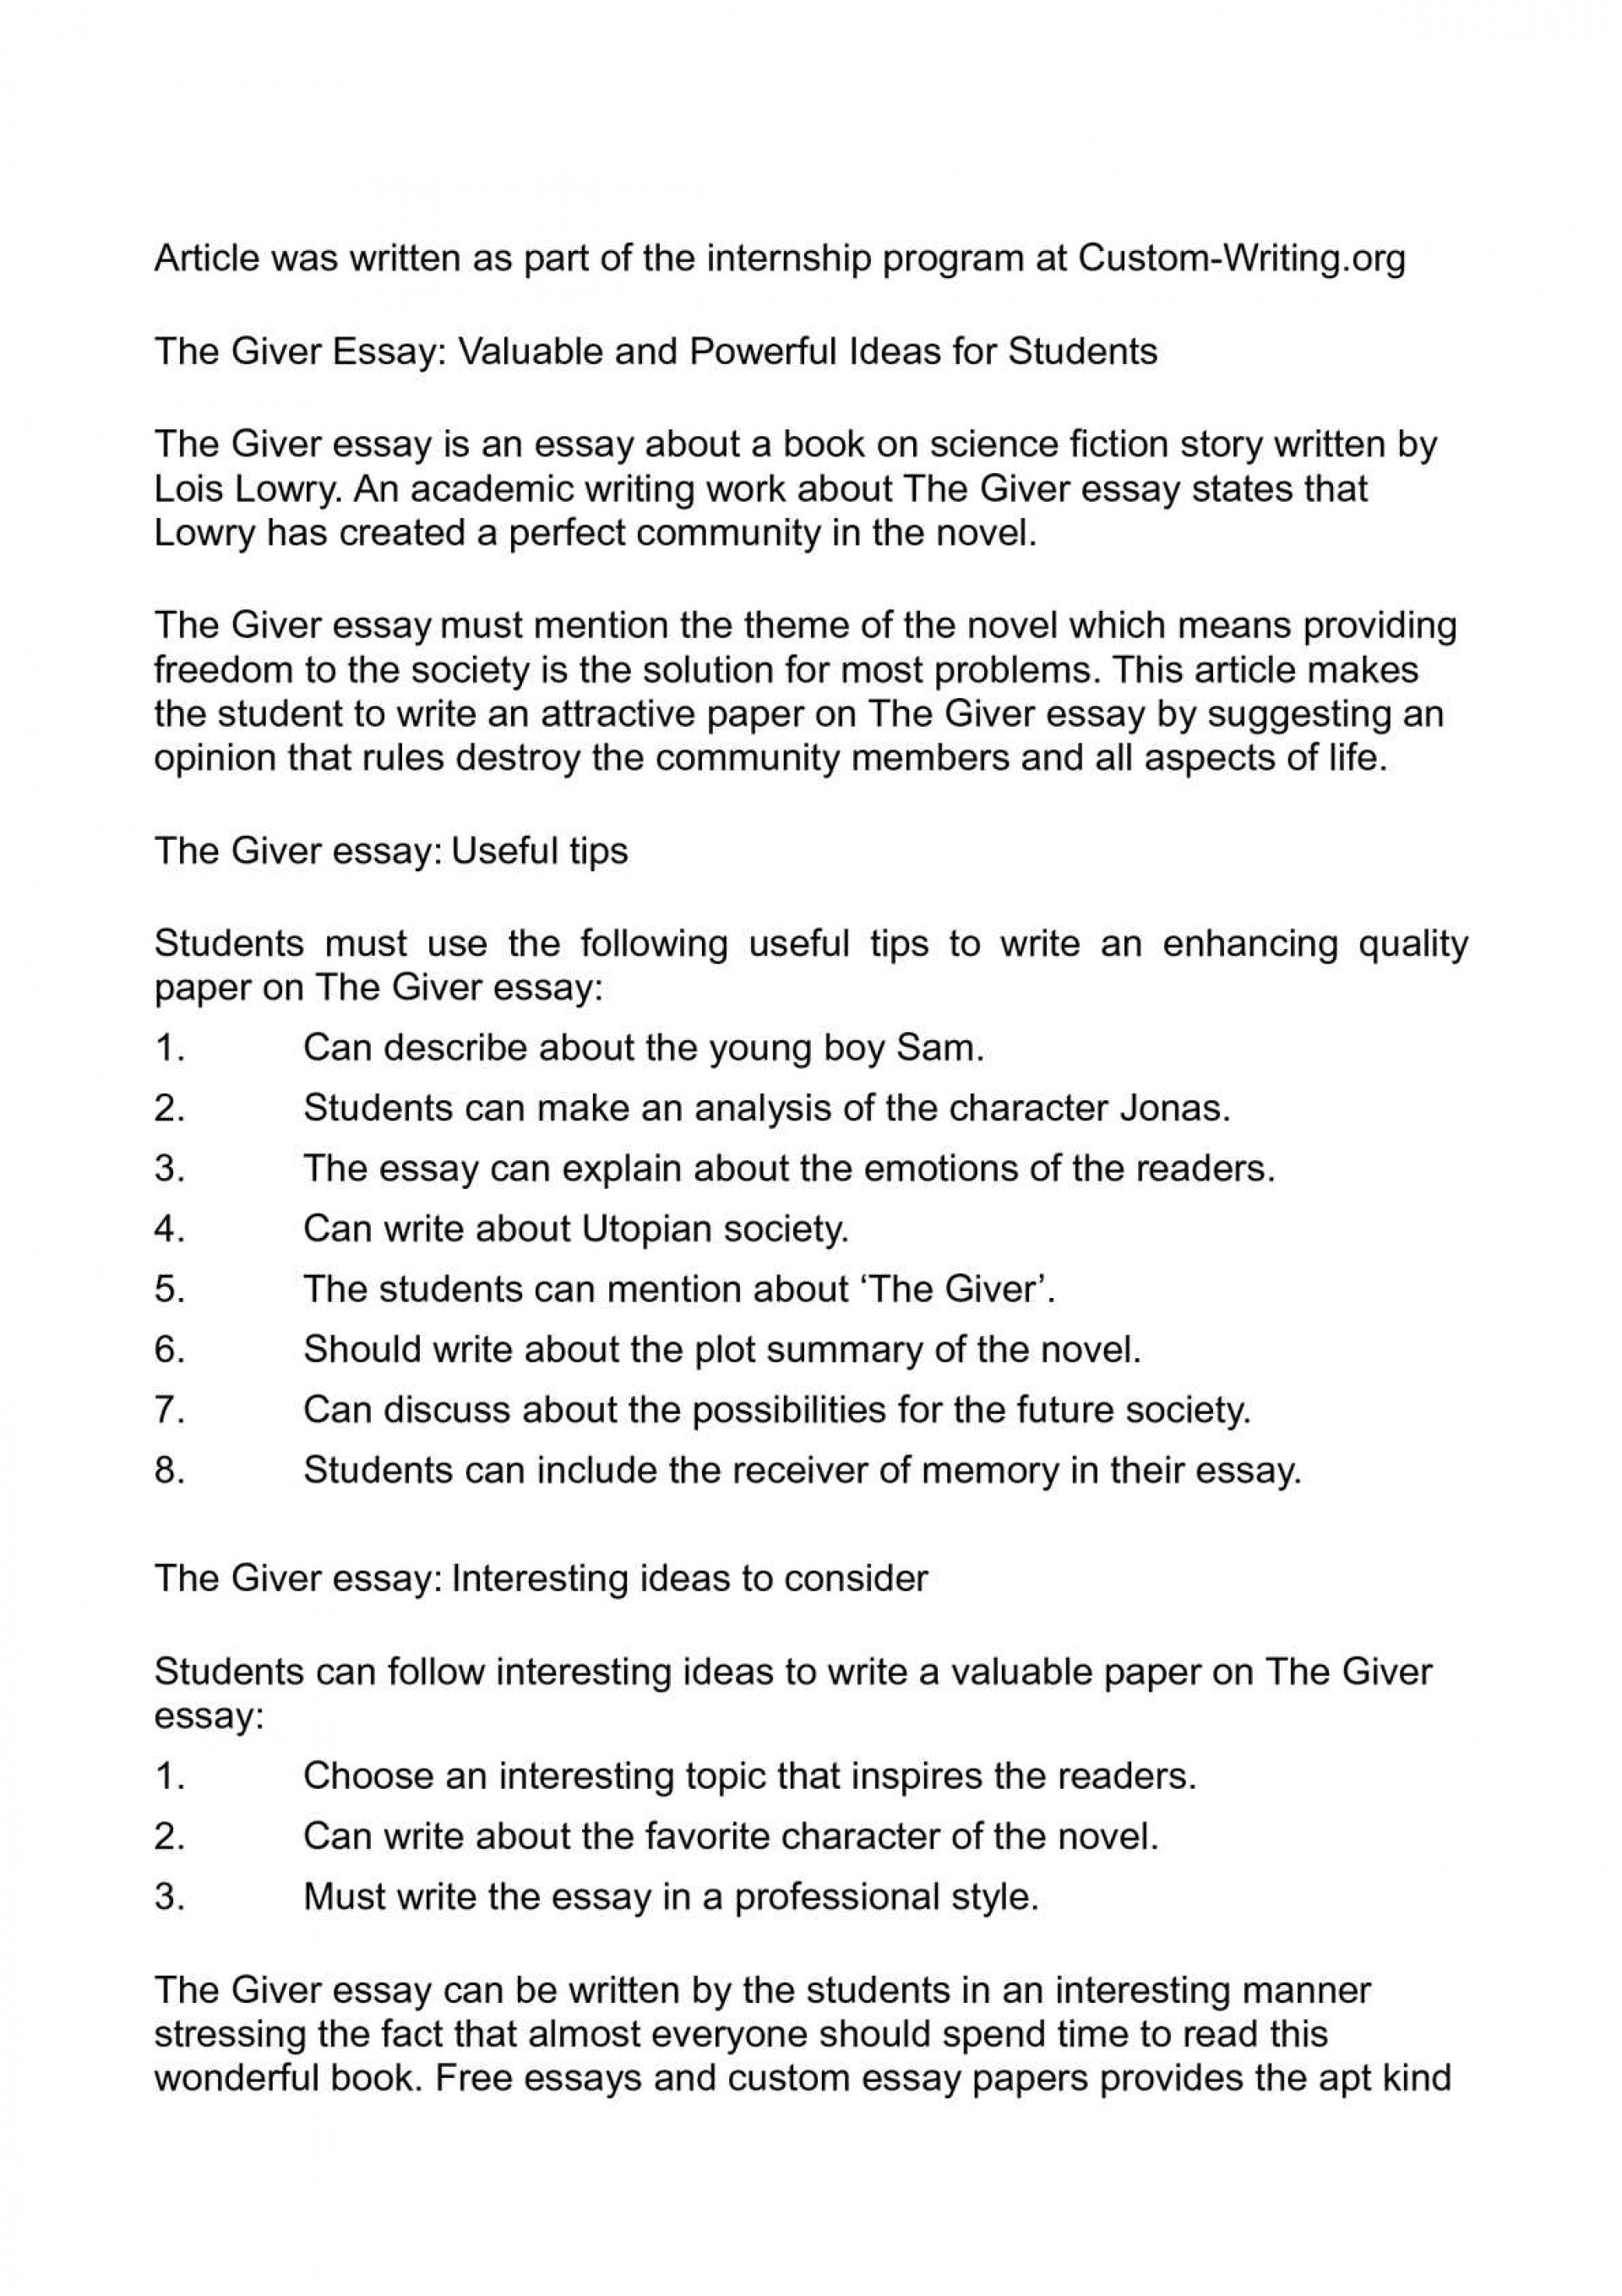 004 The Giver Essay P1 Fearsome Topics Ideas Questions 1920